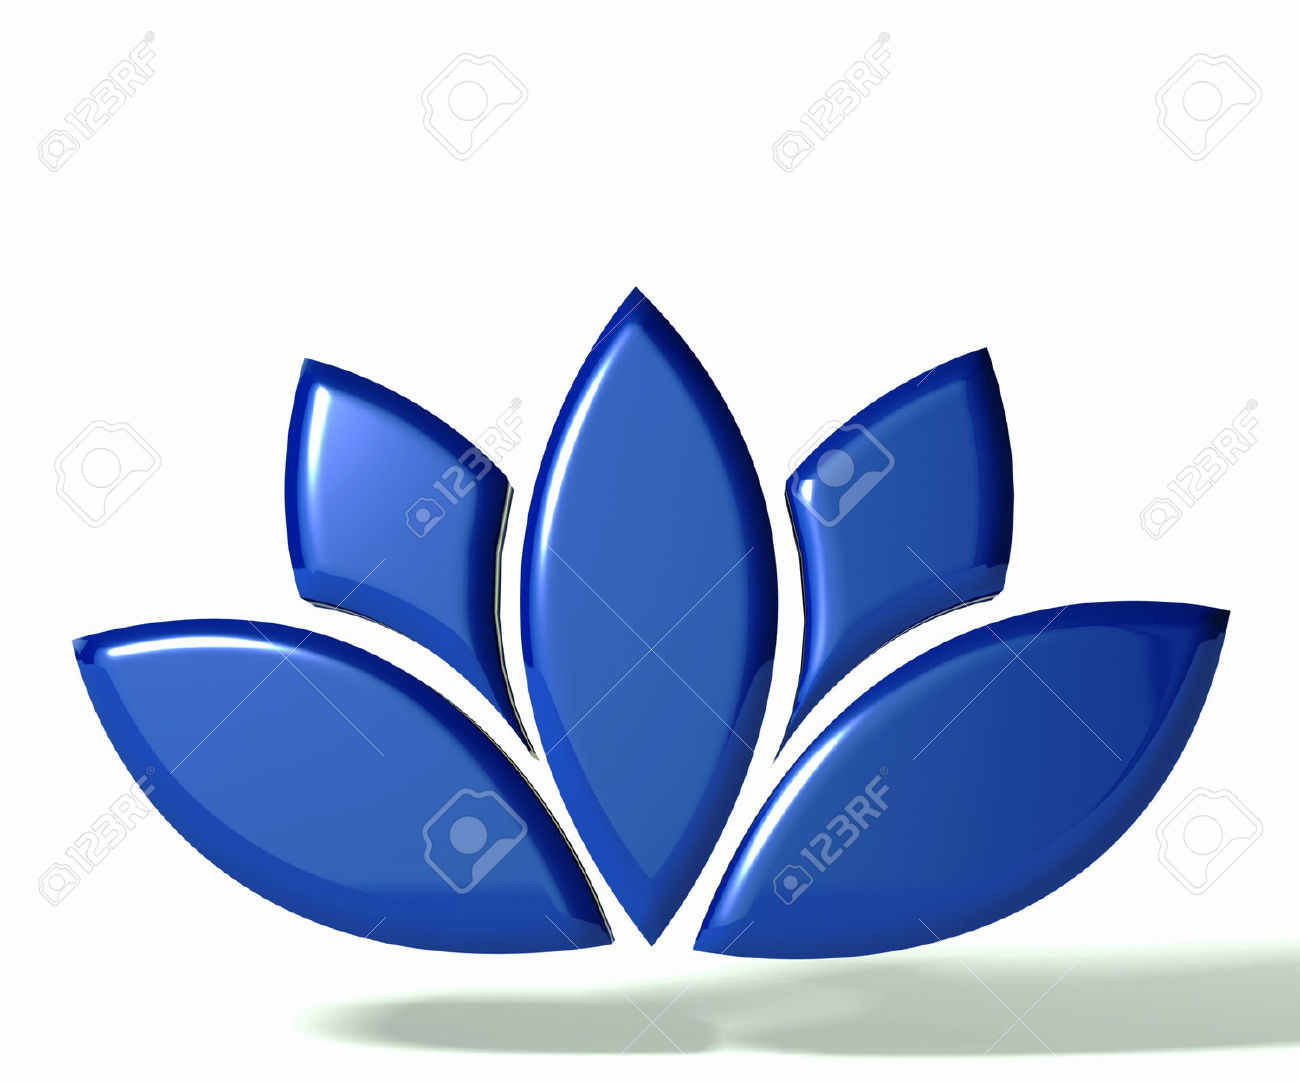 Blue Lotus Flower 3D Image Stock Photo, Picture And Royalty Free.